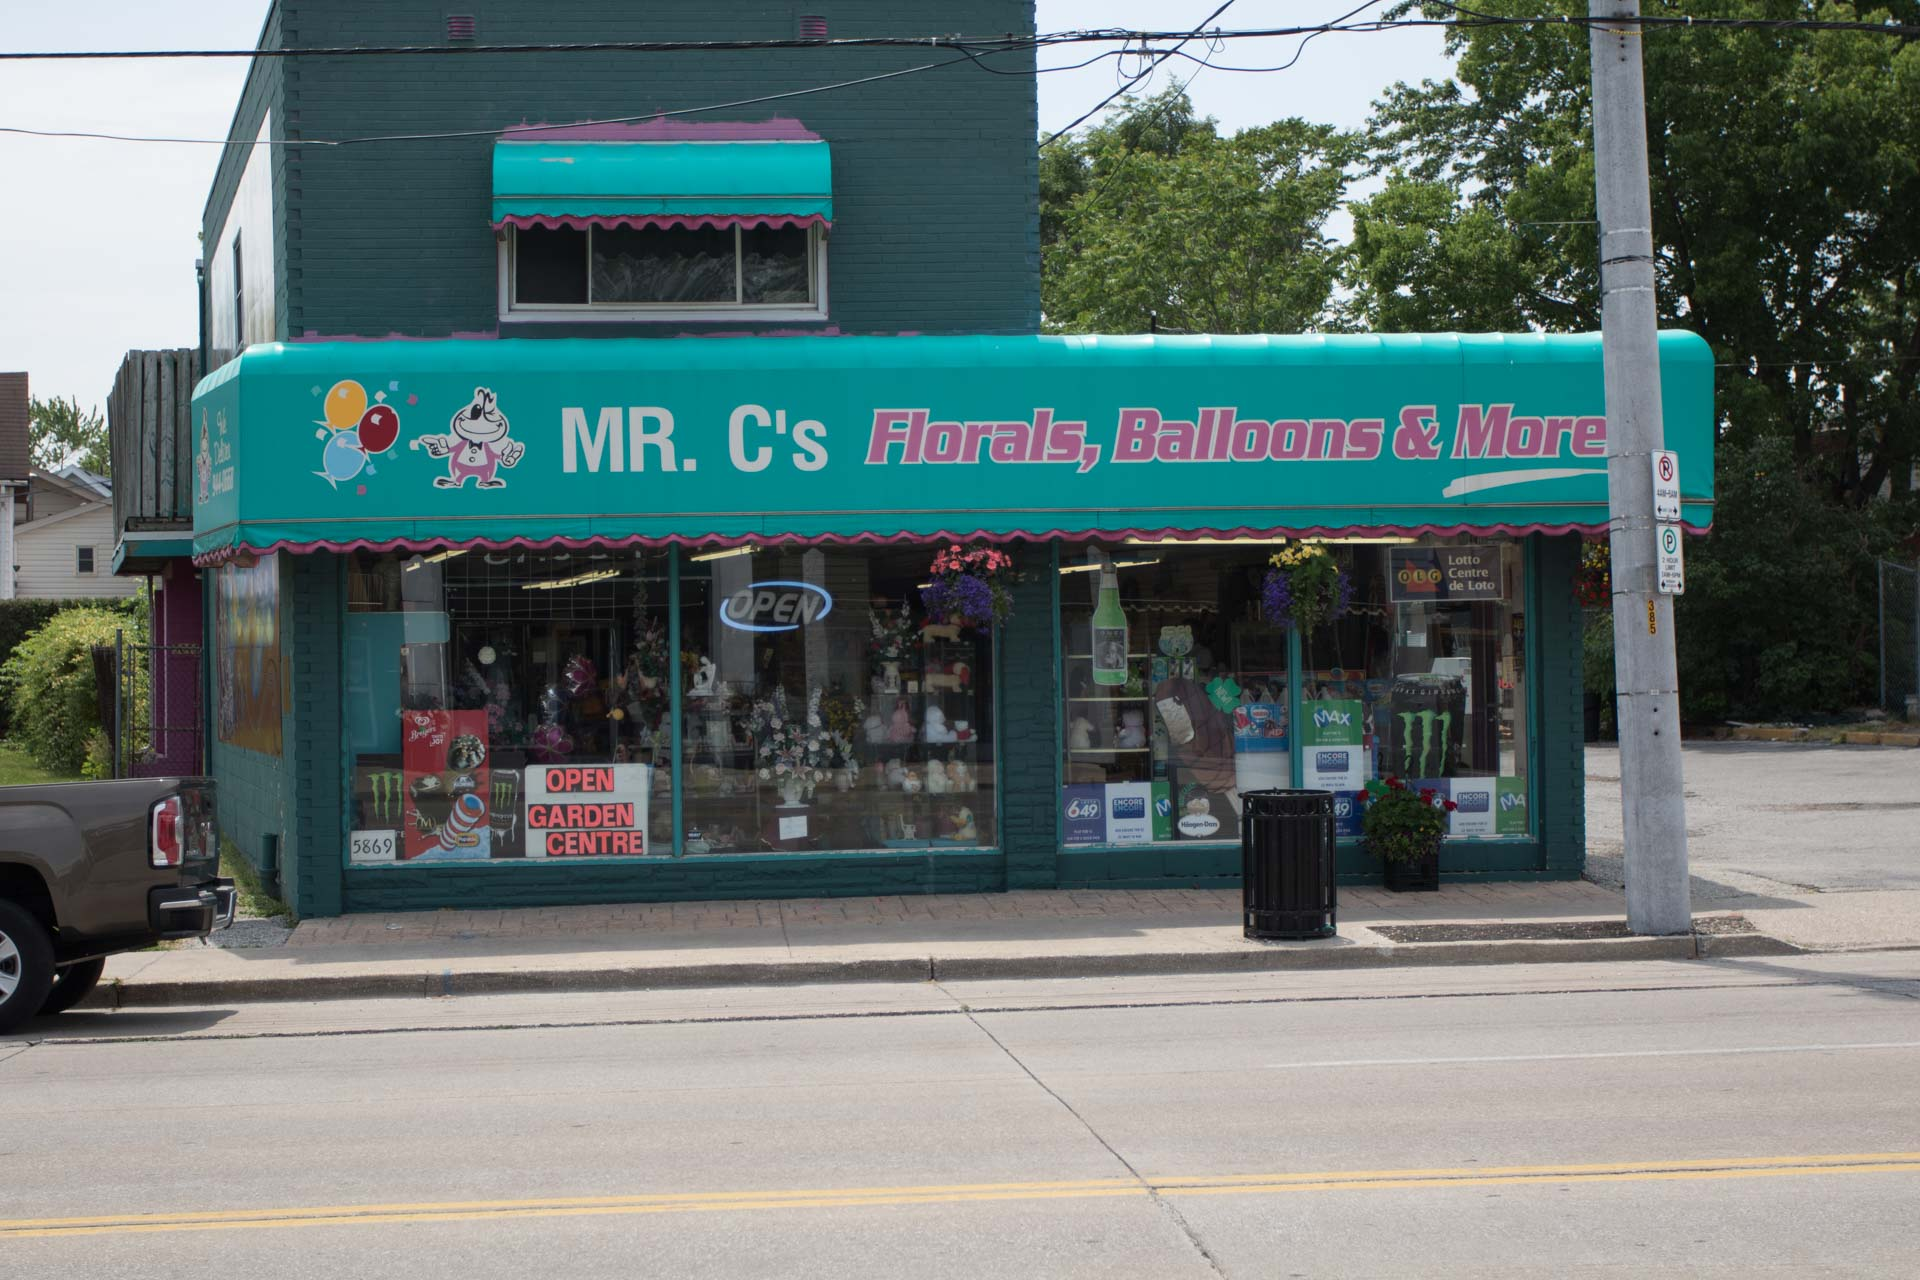 MR. C's Floral & Balloons